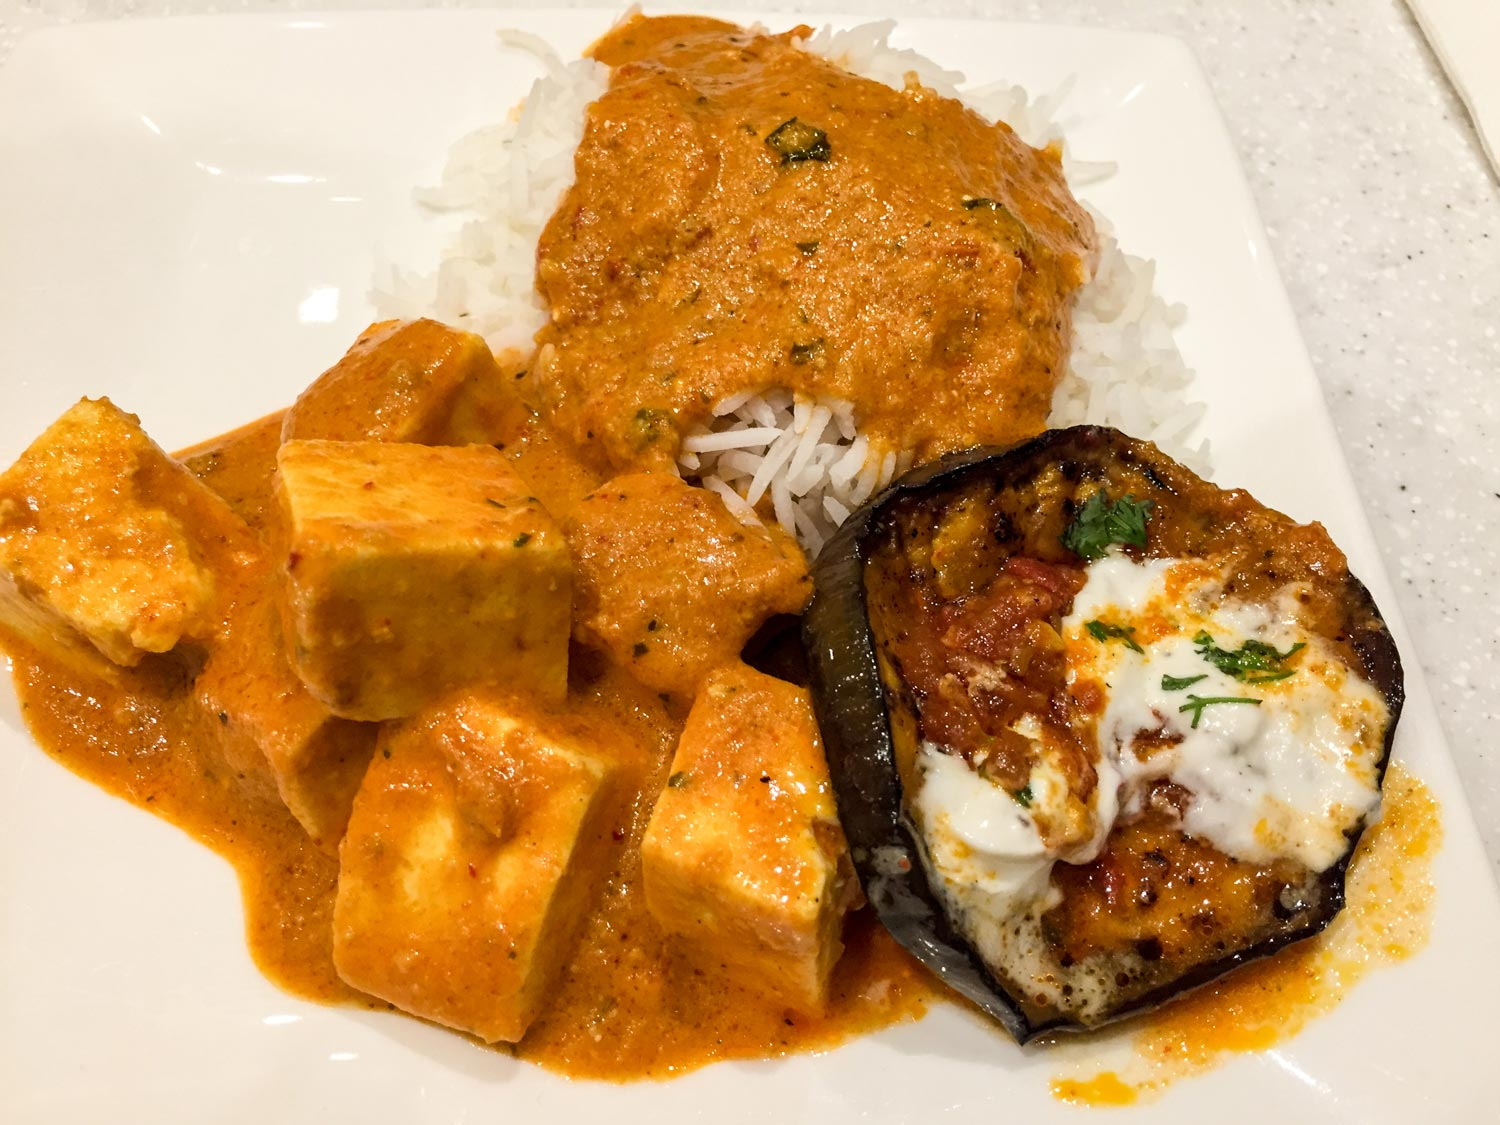 Tikka masala and stuffed mushroom